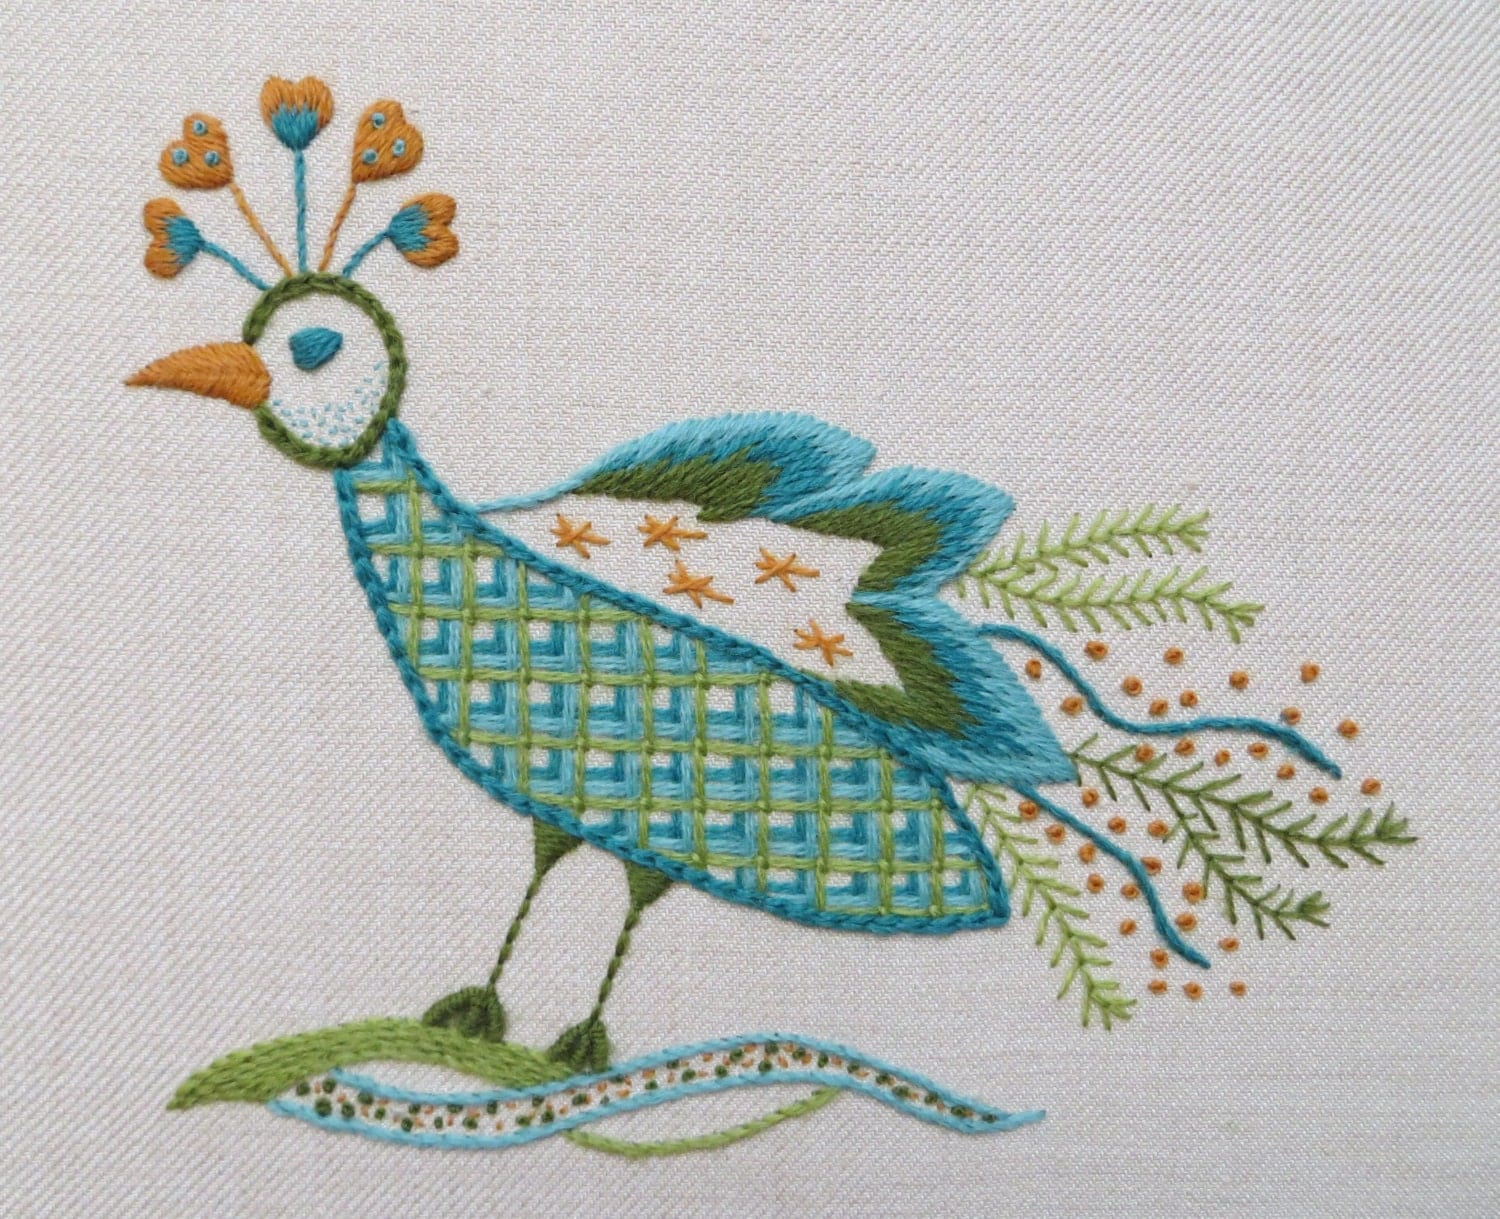 Hand embroidery kit in jacobean style peacock design